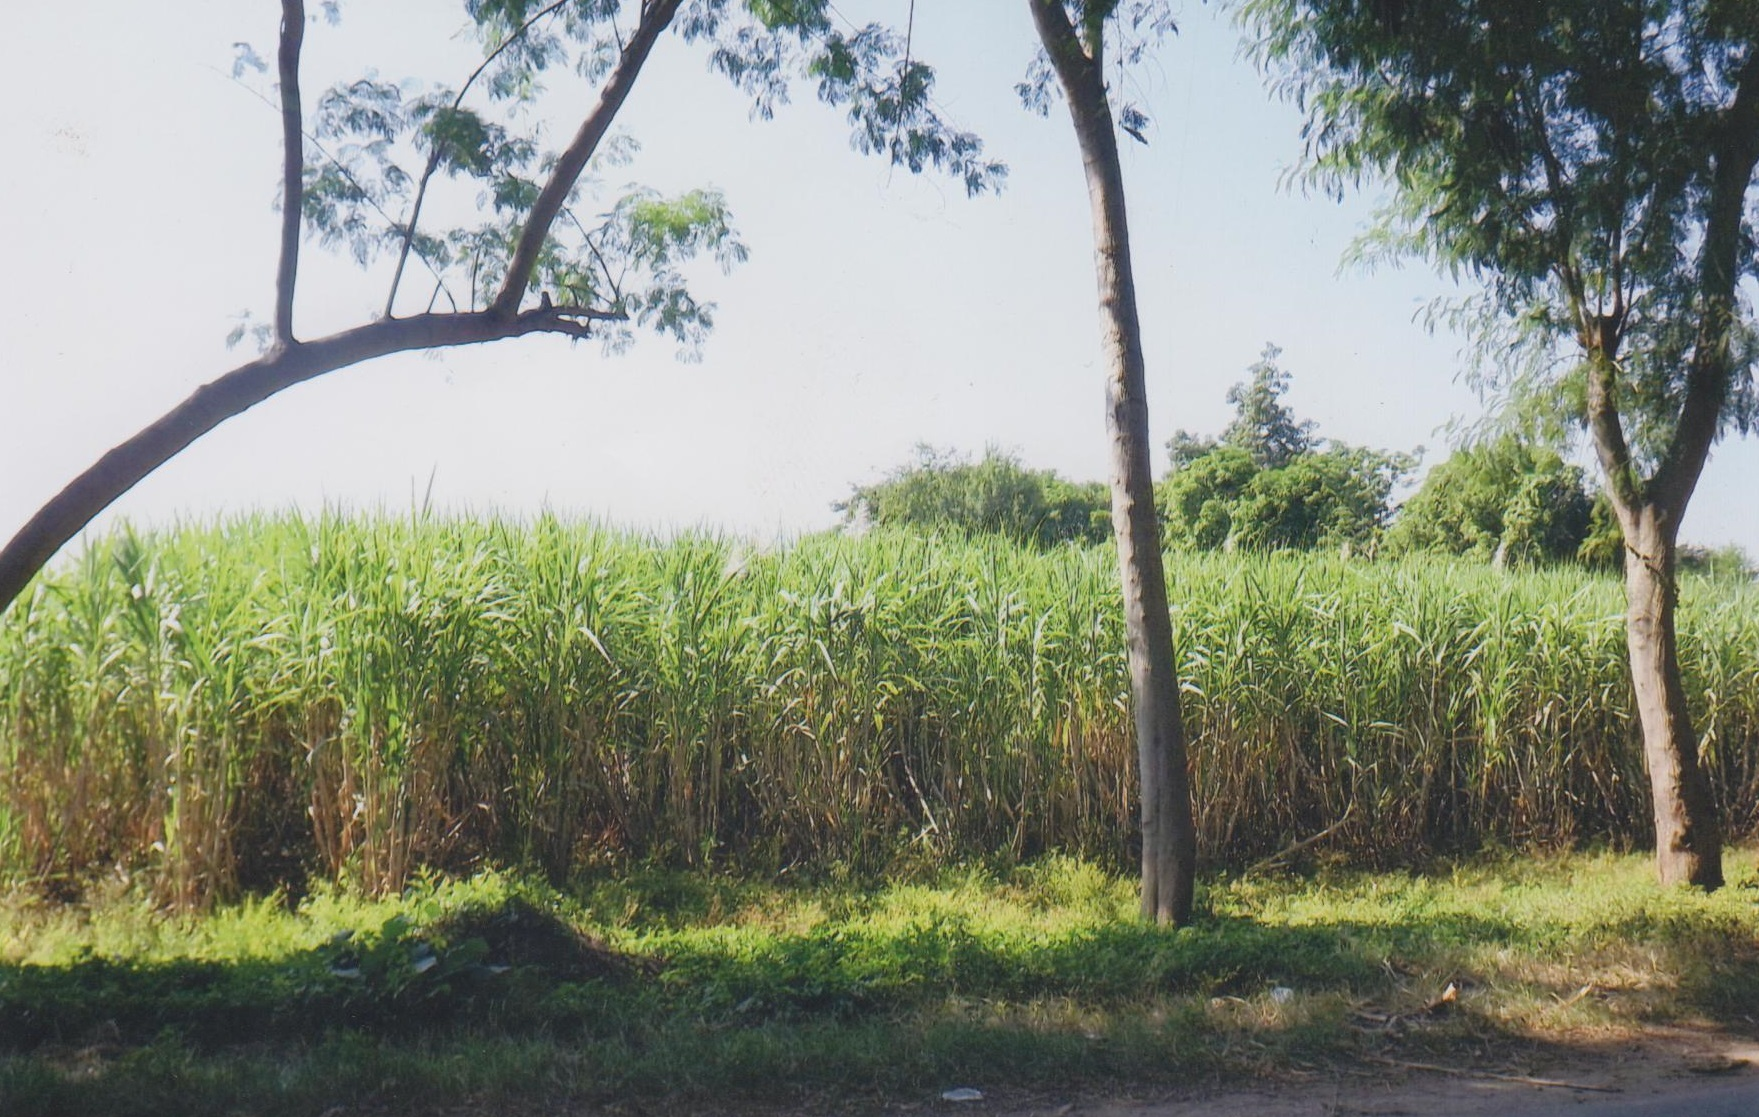 Bob LaGarde - Road trip through Central America - Sugar cane fields alongside highway CA-2 outside of Escuintla